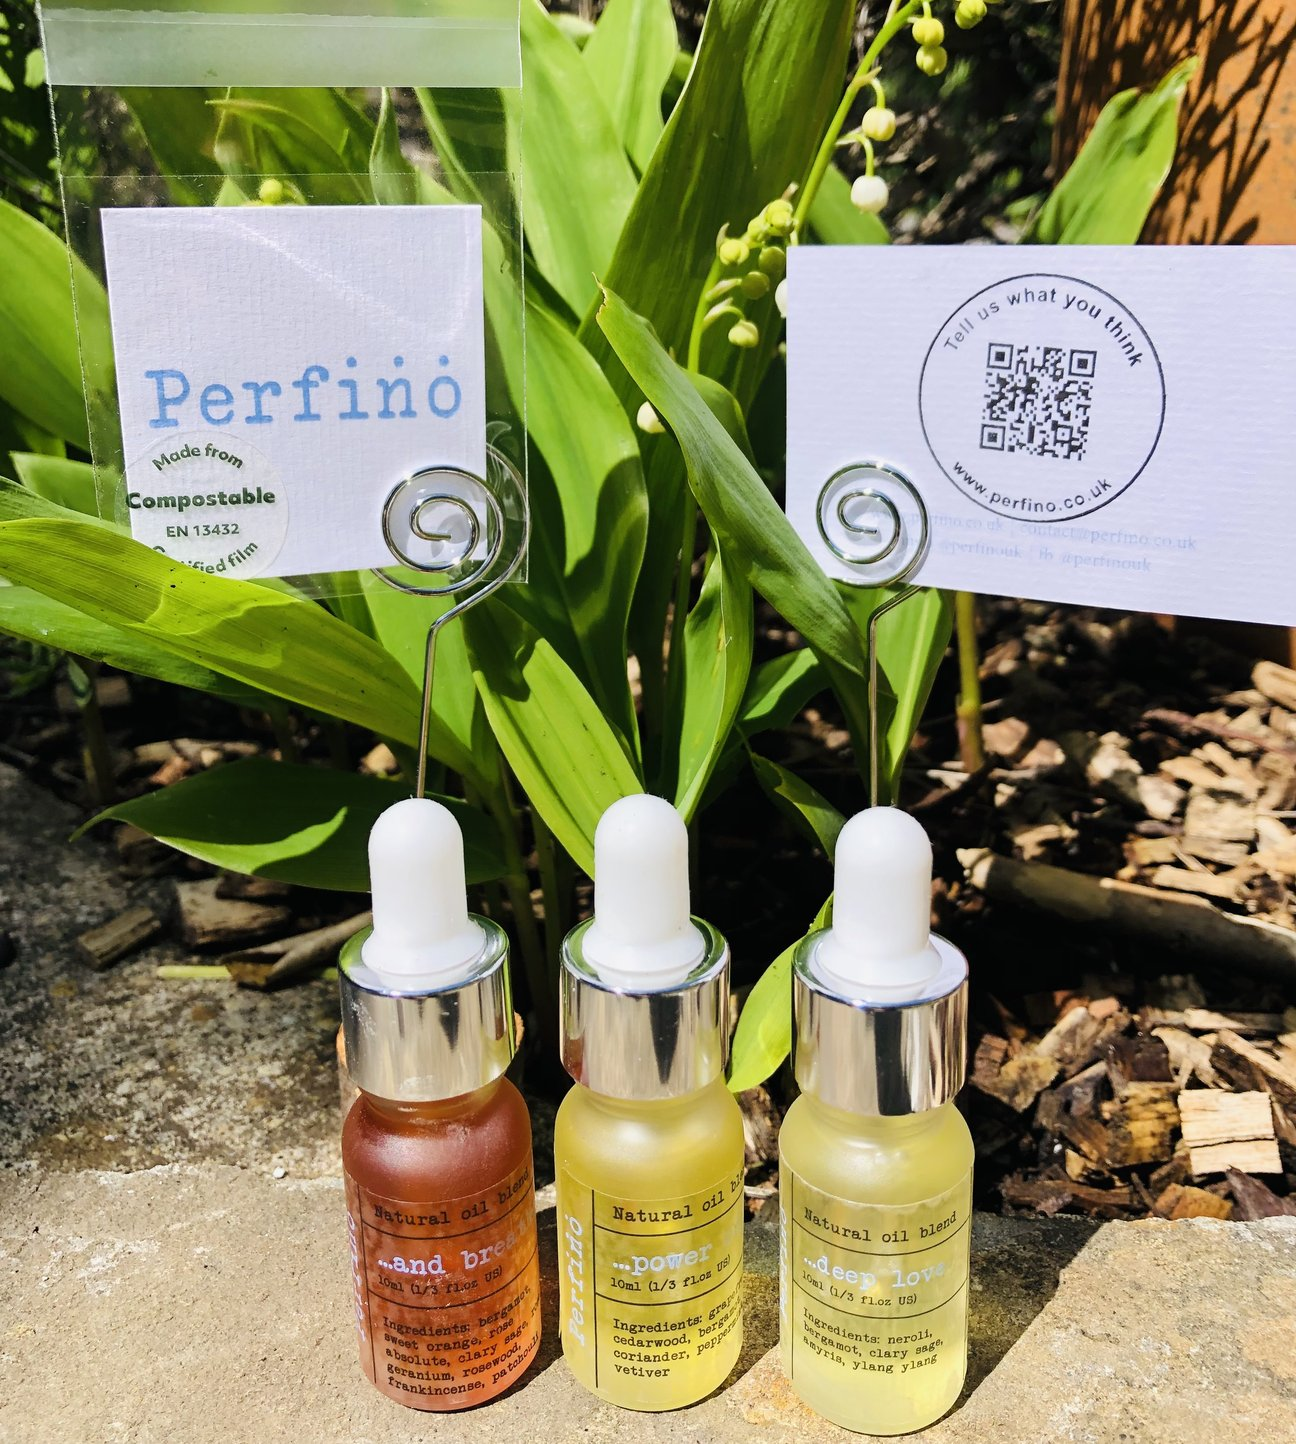 three bottles of natural essential oil blends from Perfino all lined up on the ground in front of plants